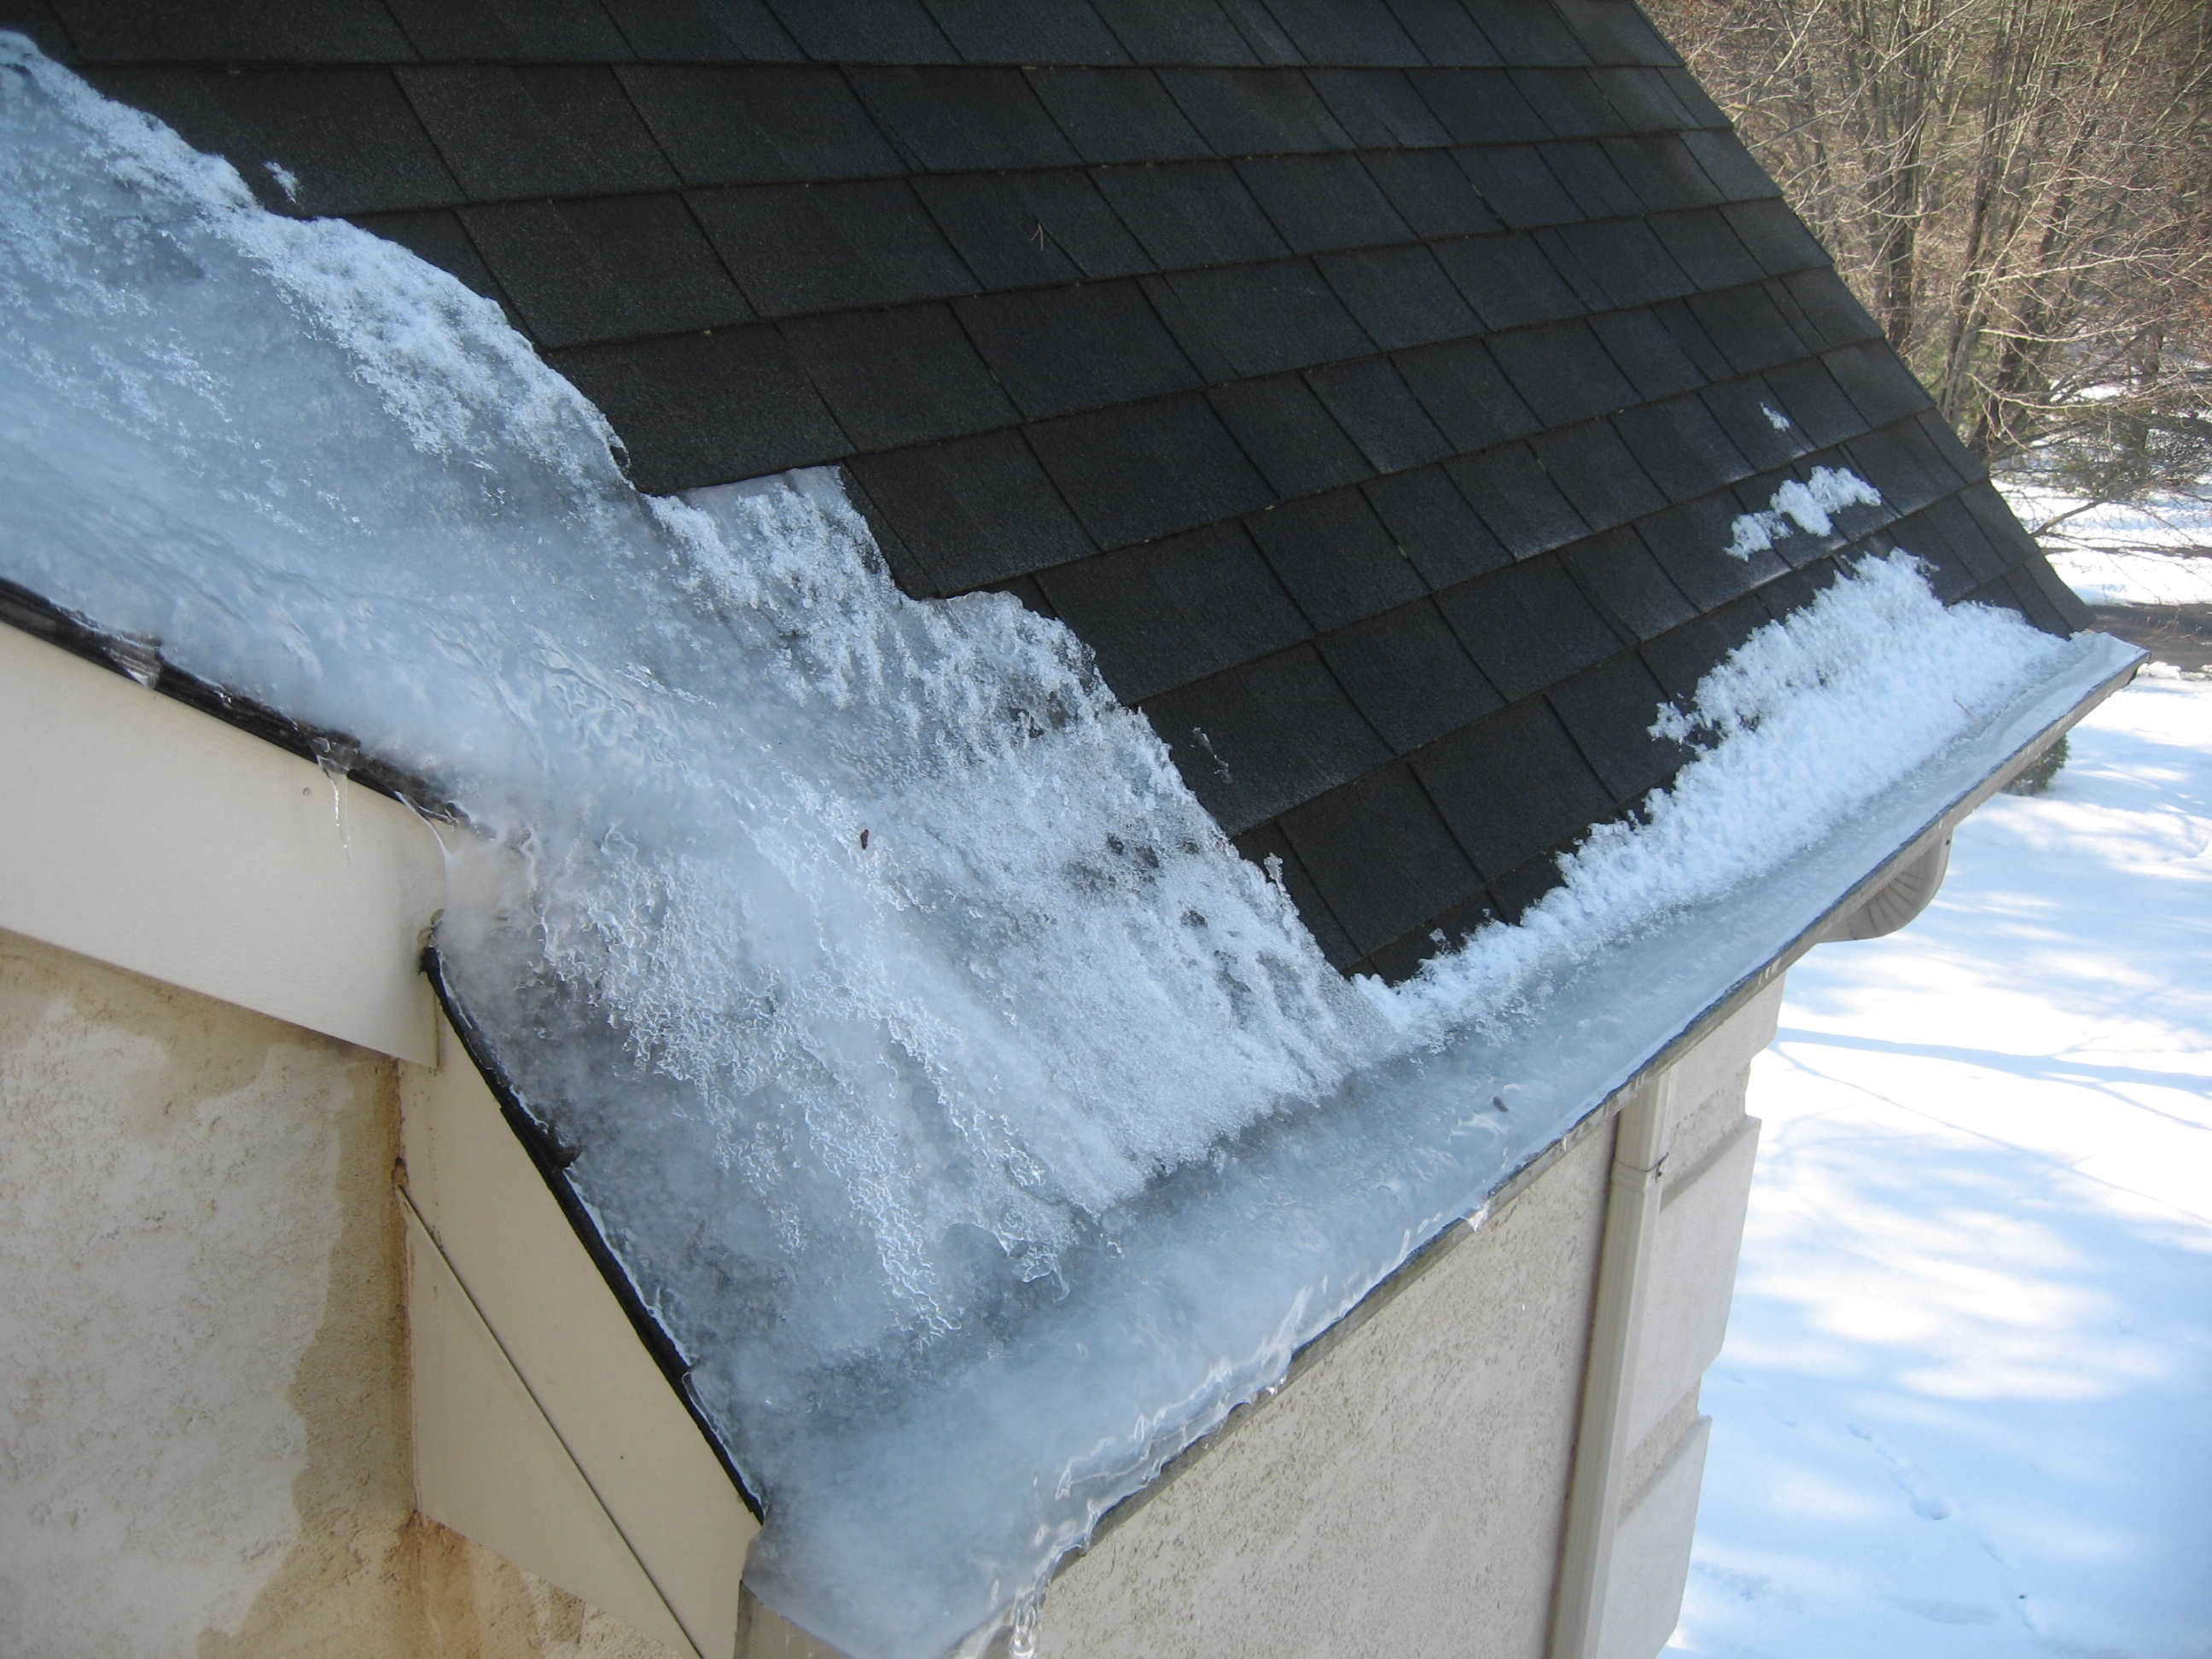 winter damage roof leaks caused by ice damming south